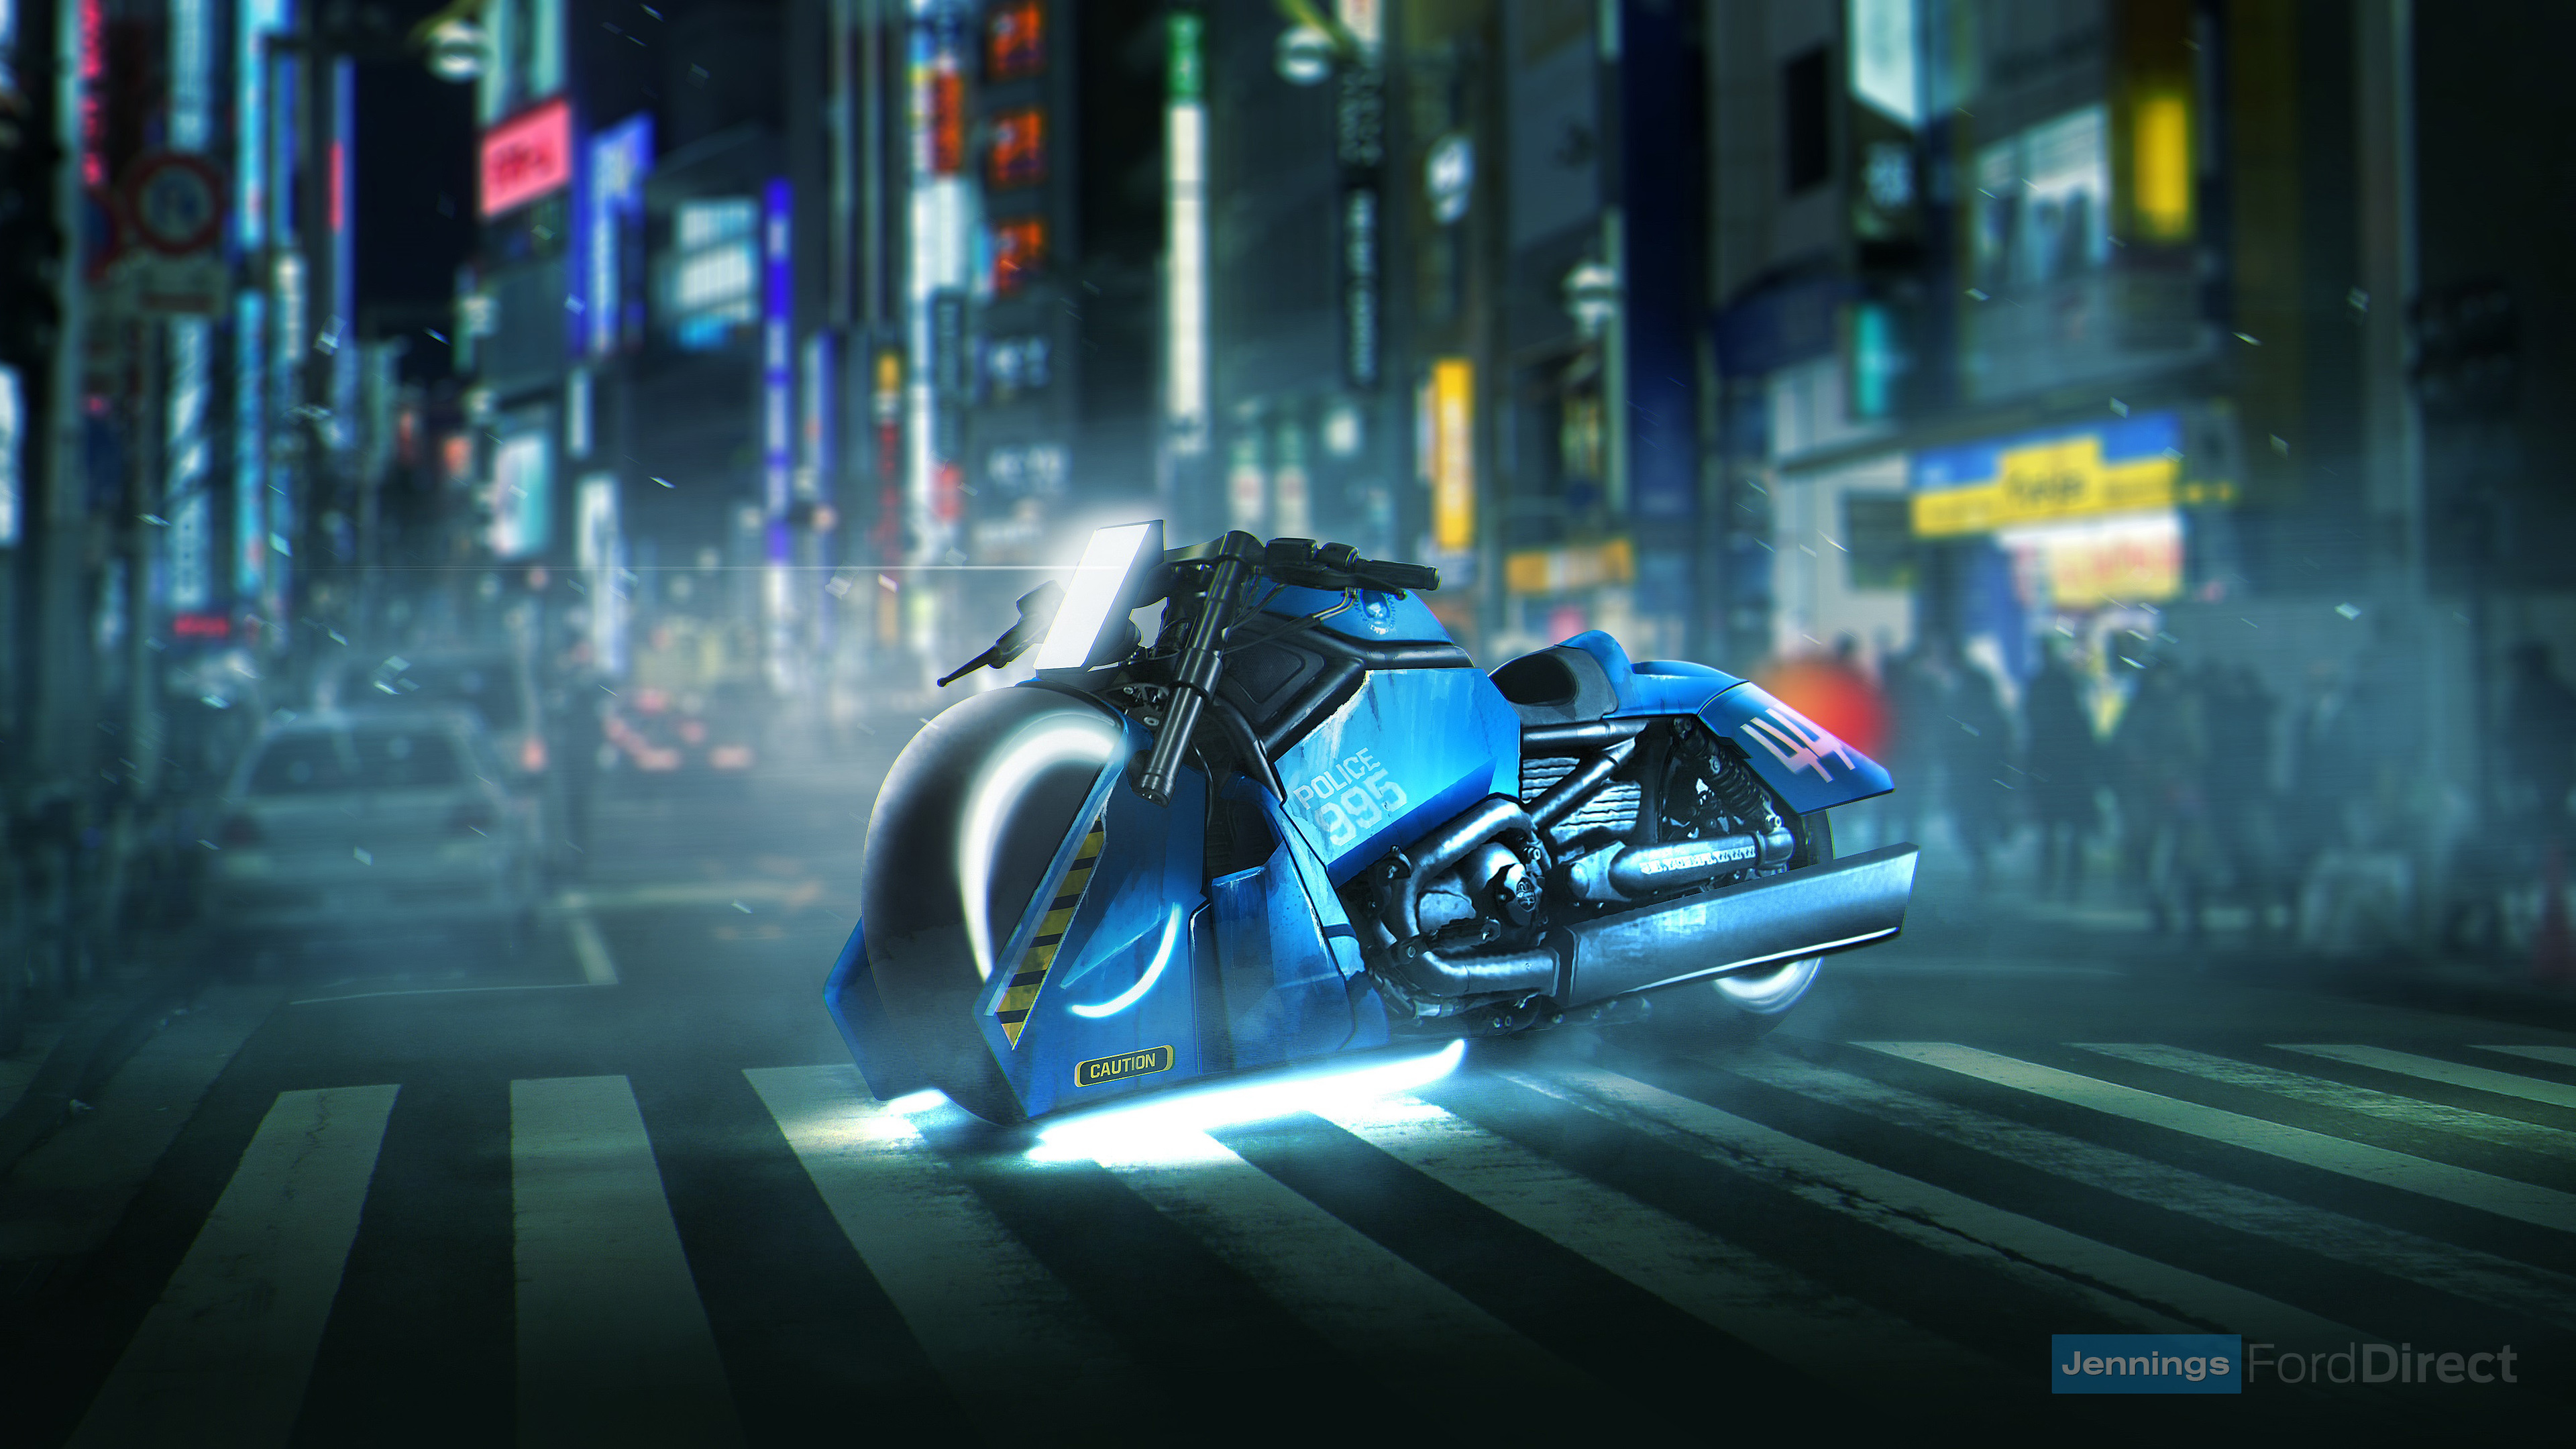 blade runner spinner bike harley davidson v rod muscle 1539105877 - Blade Runner Spinner Bike Harley Davidson V Rod Muscle - movies wallpapers, hd-wallpapers, harley davidson wallpapers, digital art wallpapers, cars wallpapers, blade runner 2049 wallpapers, bikes wallpapers, artwork wallpapers, artist wallpapers, 4k-wallpapers, 2017 movies wallpapers